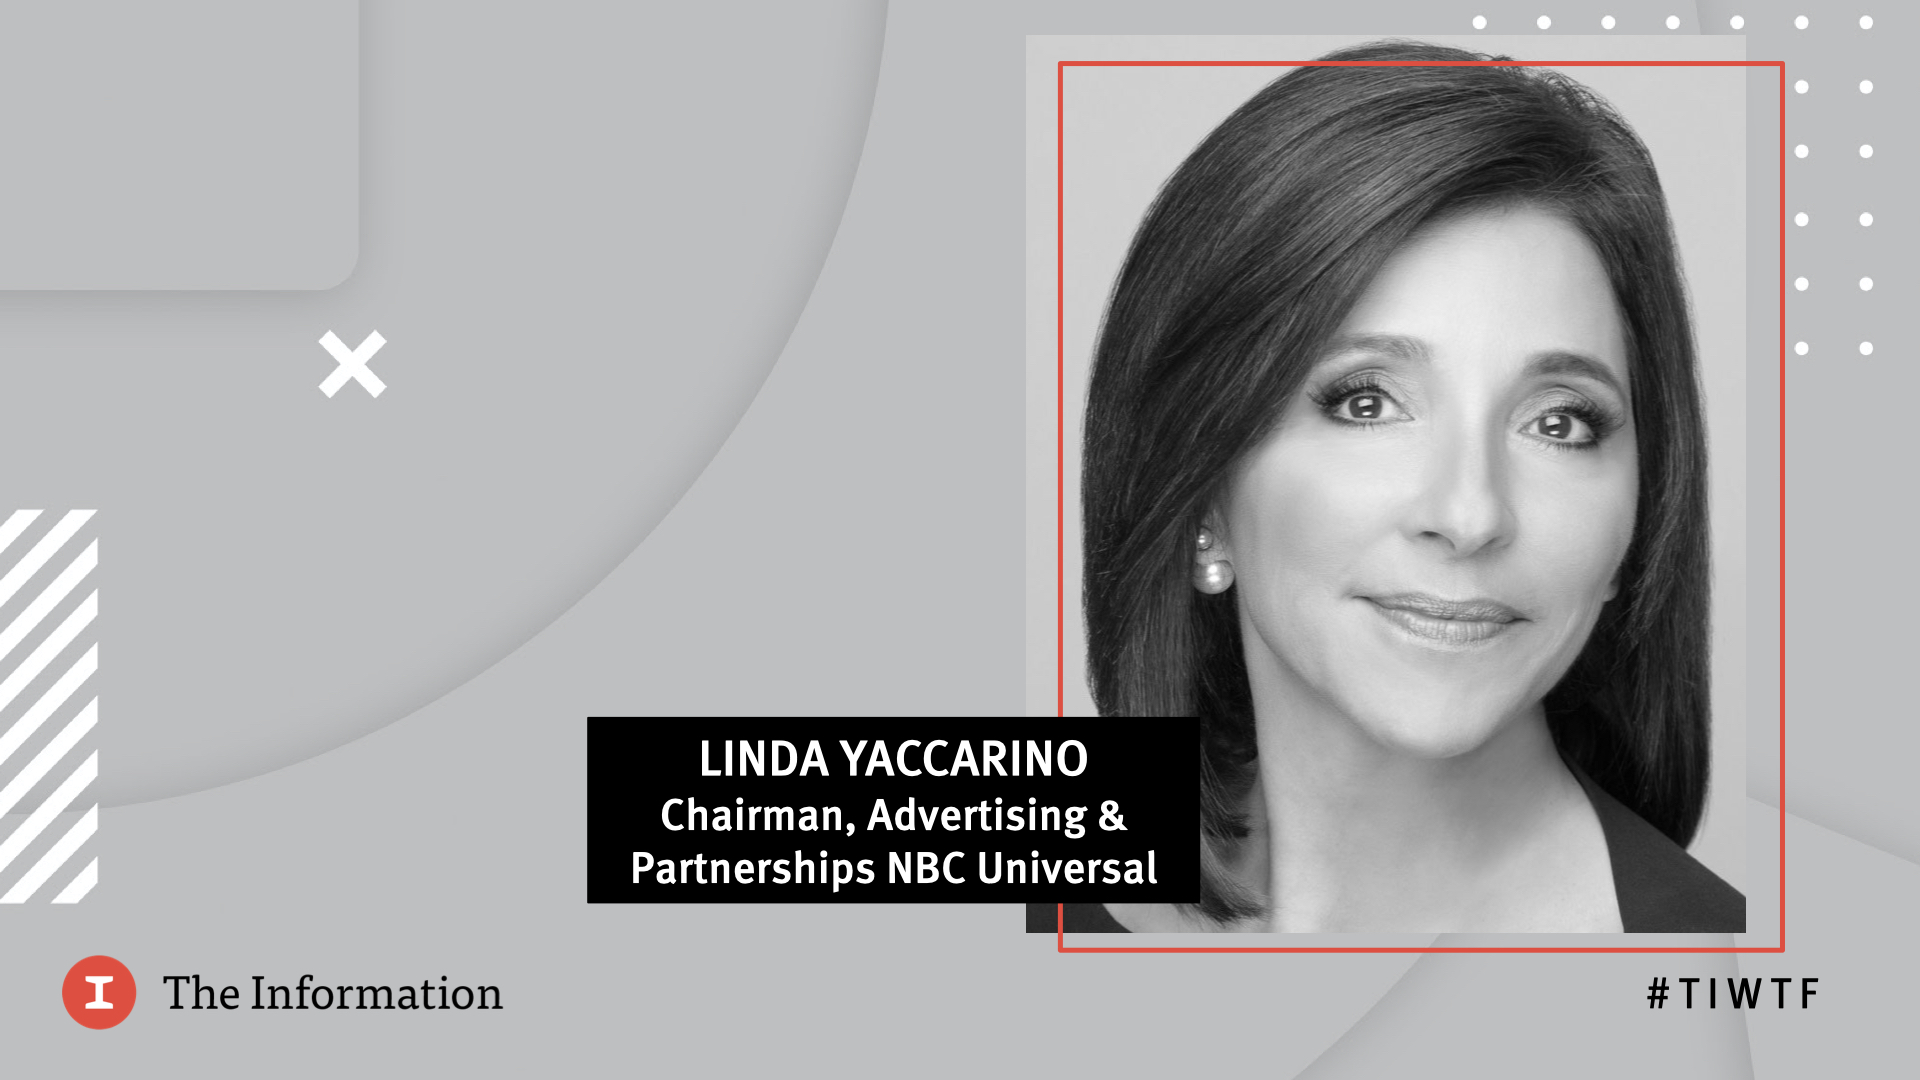 WTF 2020 - NBC Universal's Chairman of Advertising & Partnerships Linda Yaccarino in conversation with Jessica Toonkel, reporter at The Information